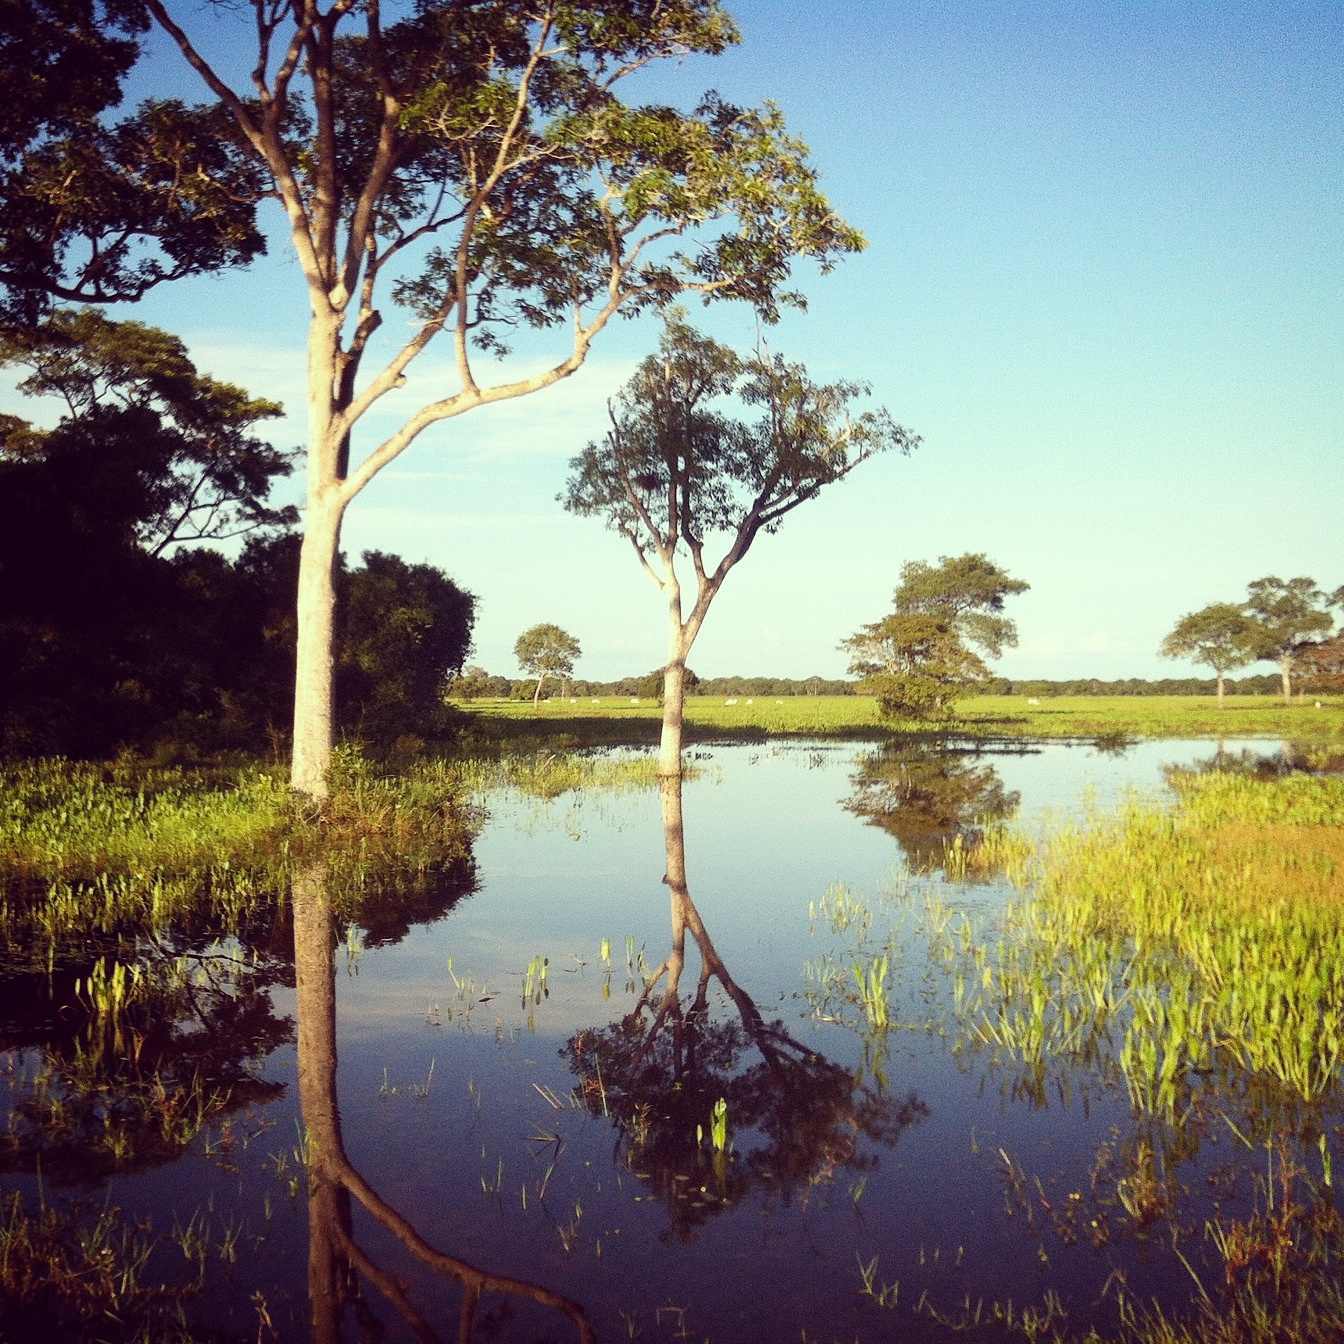 The Pantanal is a patchwork of flooded areas and savannah-like forest. Noah Strycker